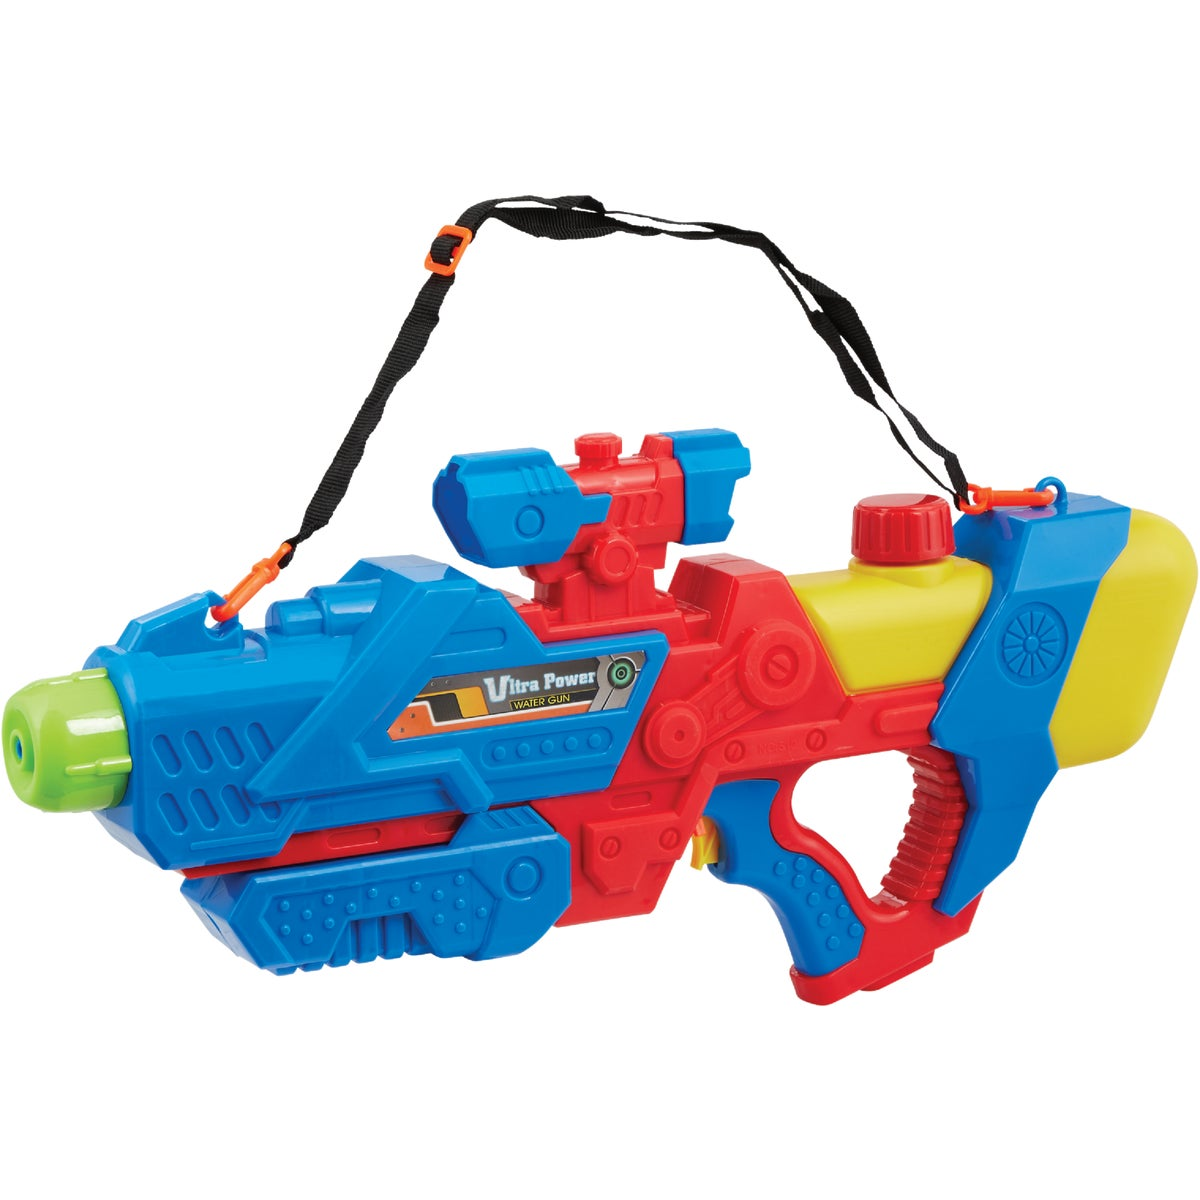 CSG X5 LG WATERGUN - 81004 by Water Sports Llc